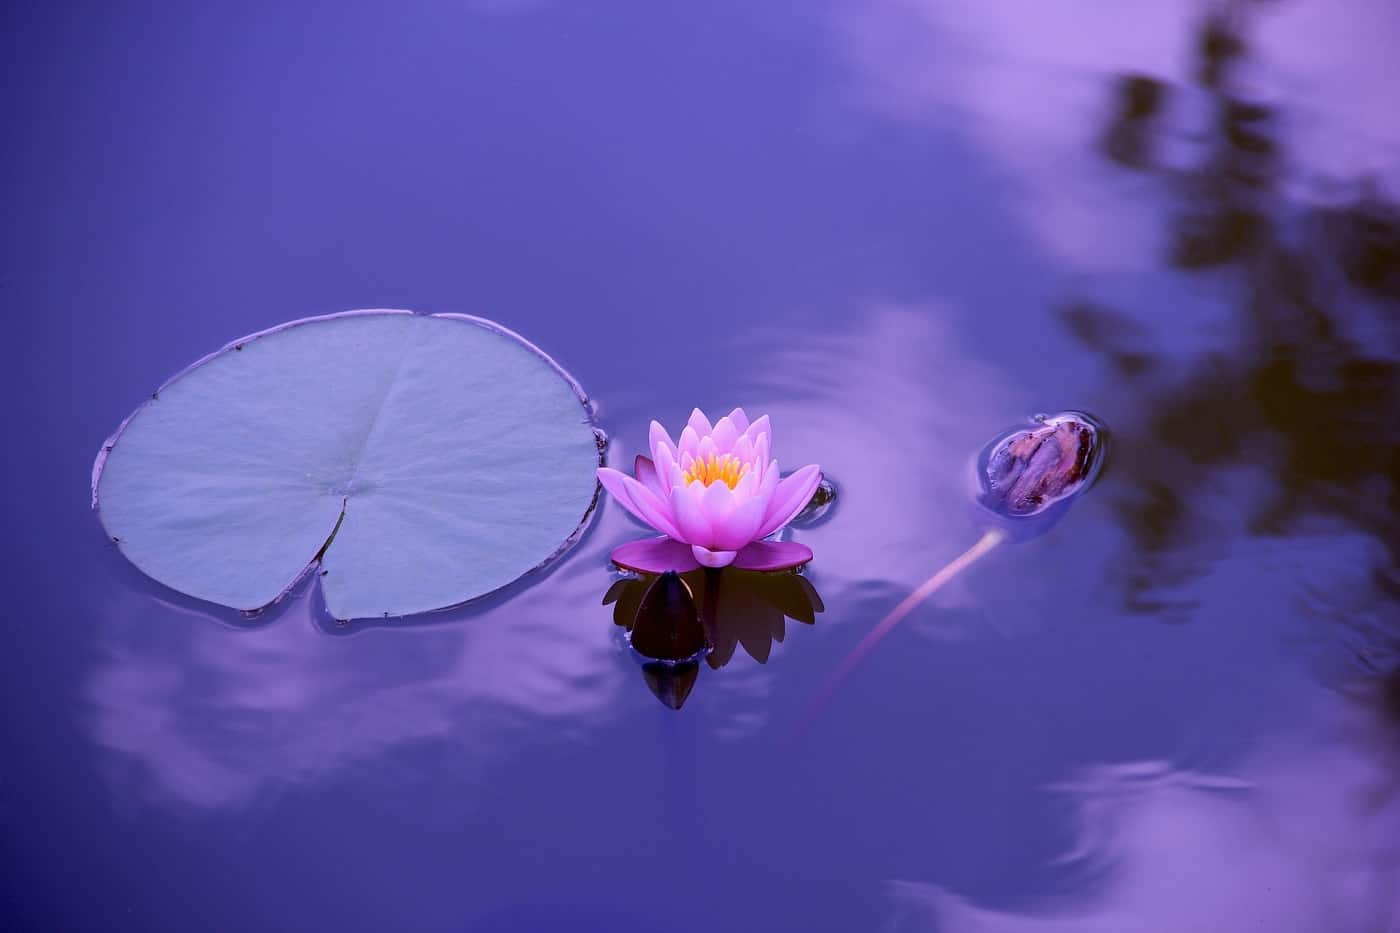 Pink lotus flower floating in blue water with lily pad - Meditation club